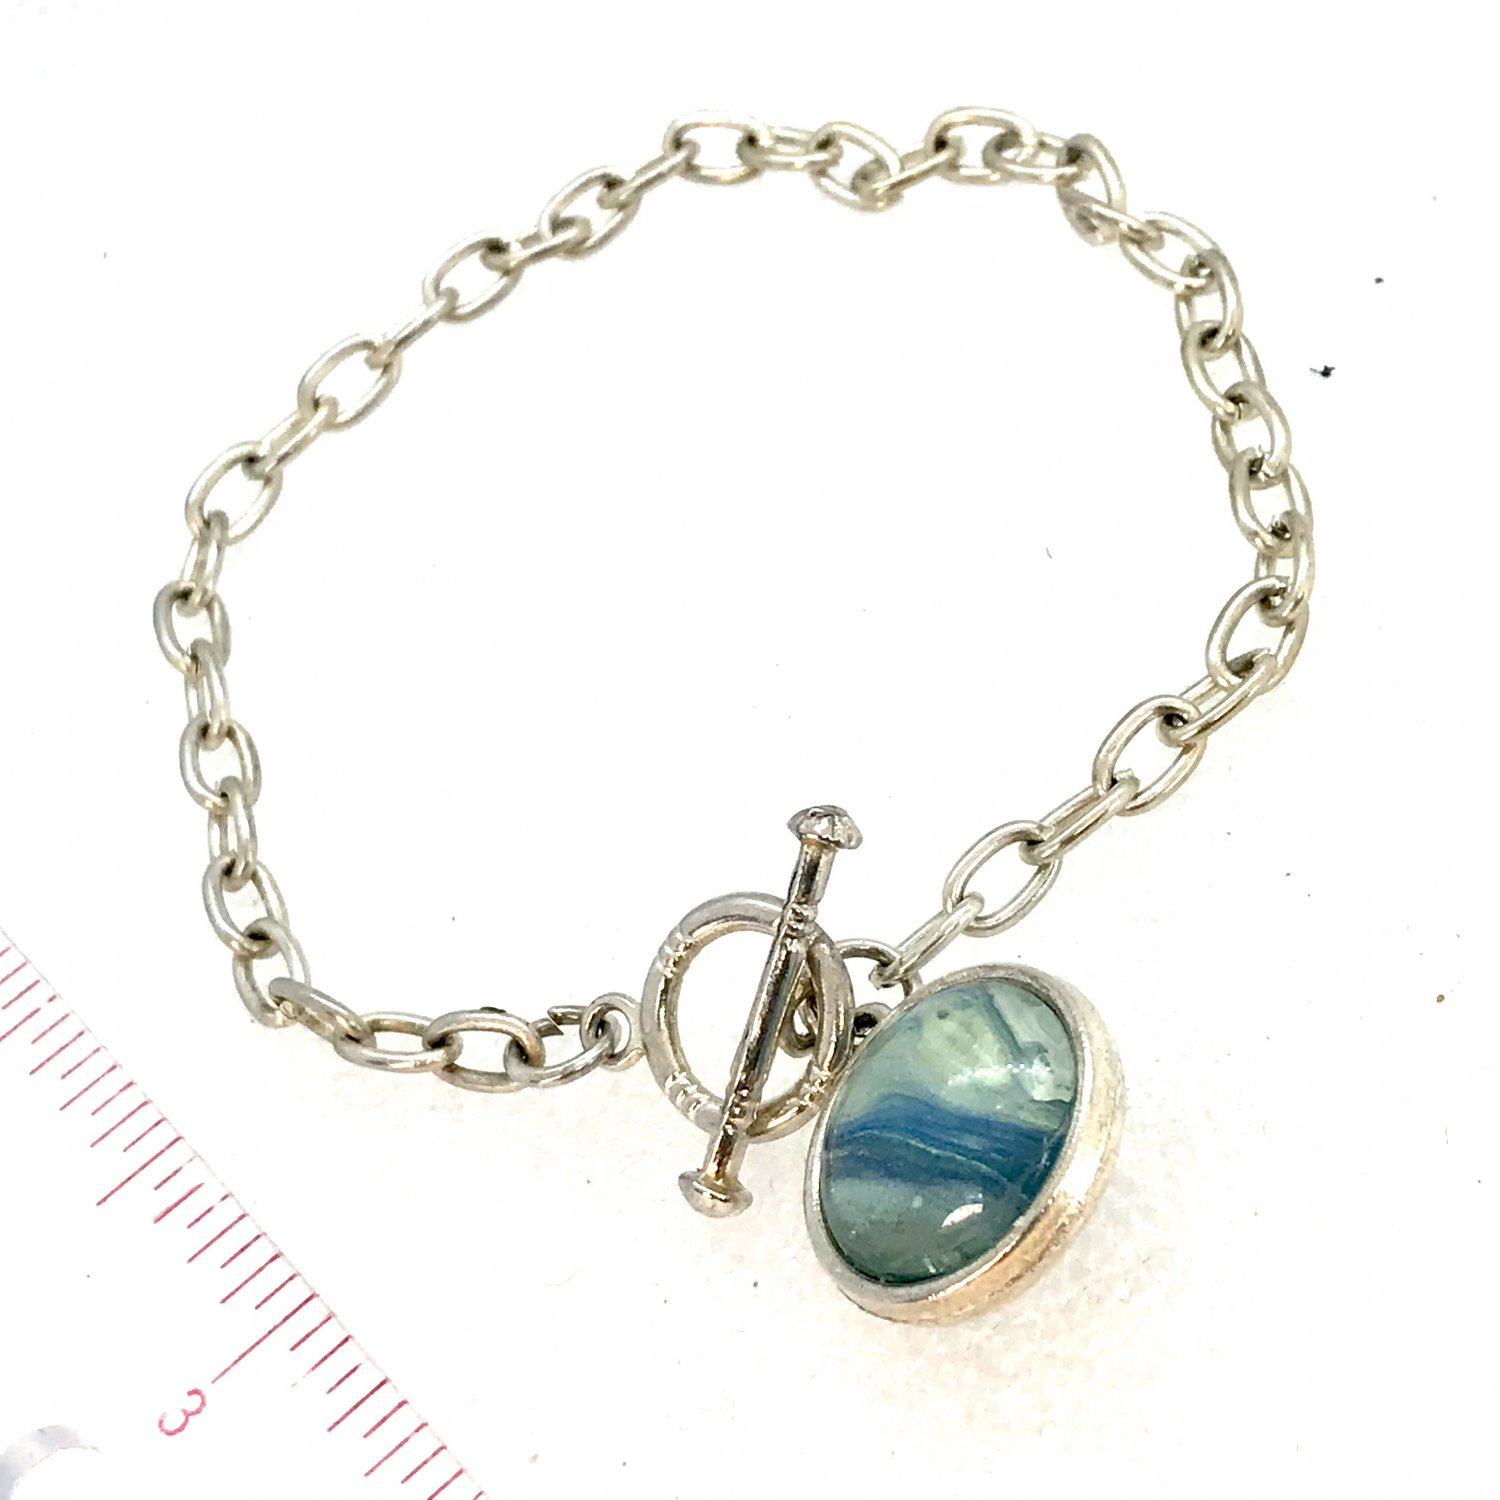 Bracelet chain links and Handmade 16mm double dome charm